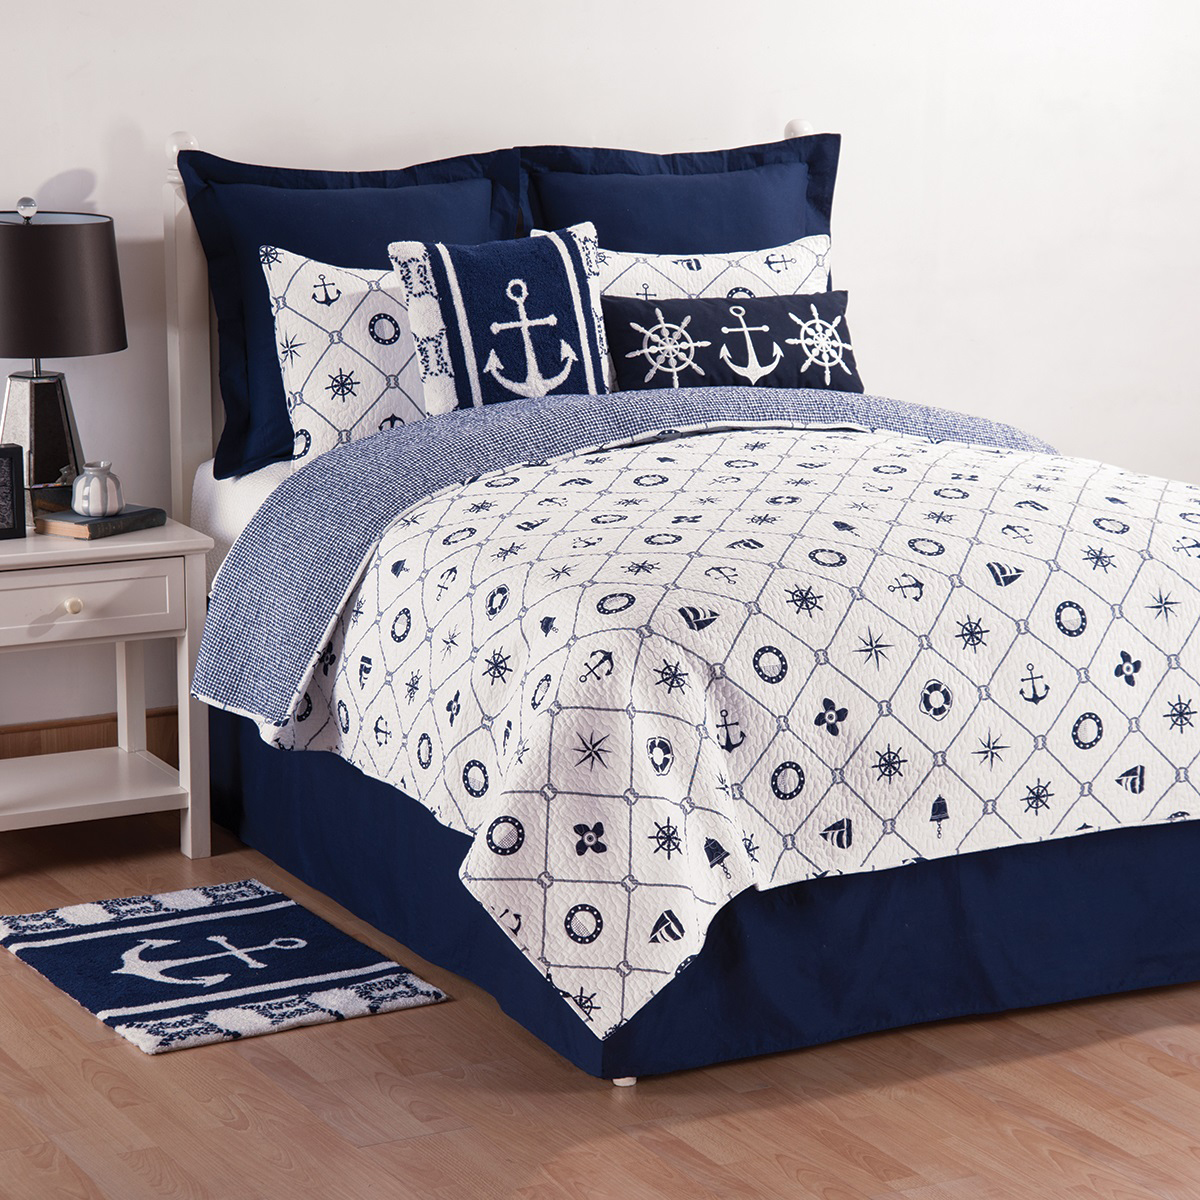 Sailor S Bay By C Amp F Quilts Beddingsuperstore Com